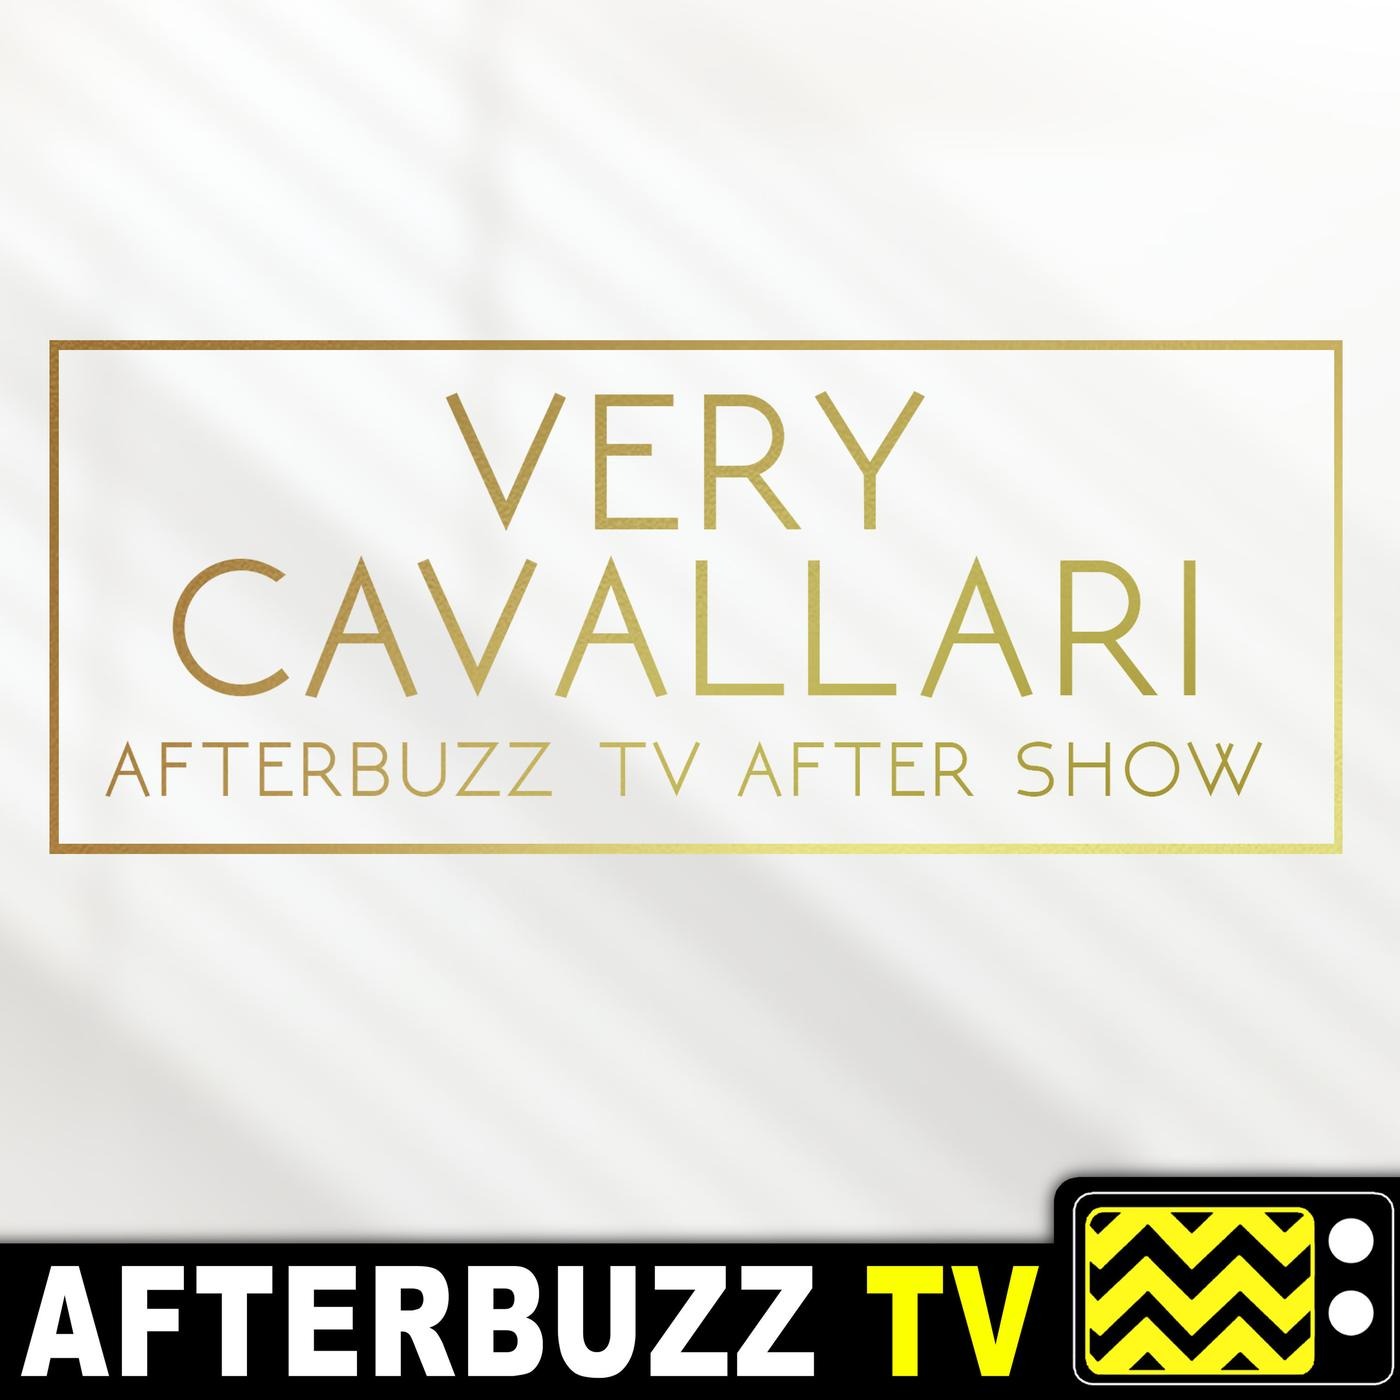 Very Cavallari Reviews and After Show - AfterBuzz TV